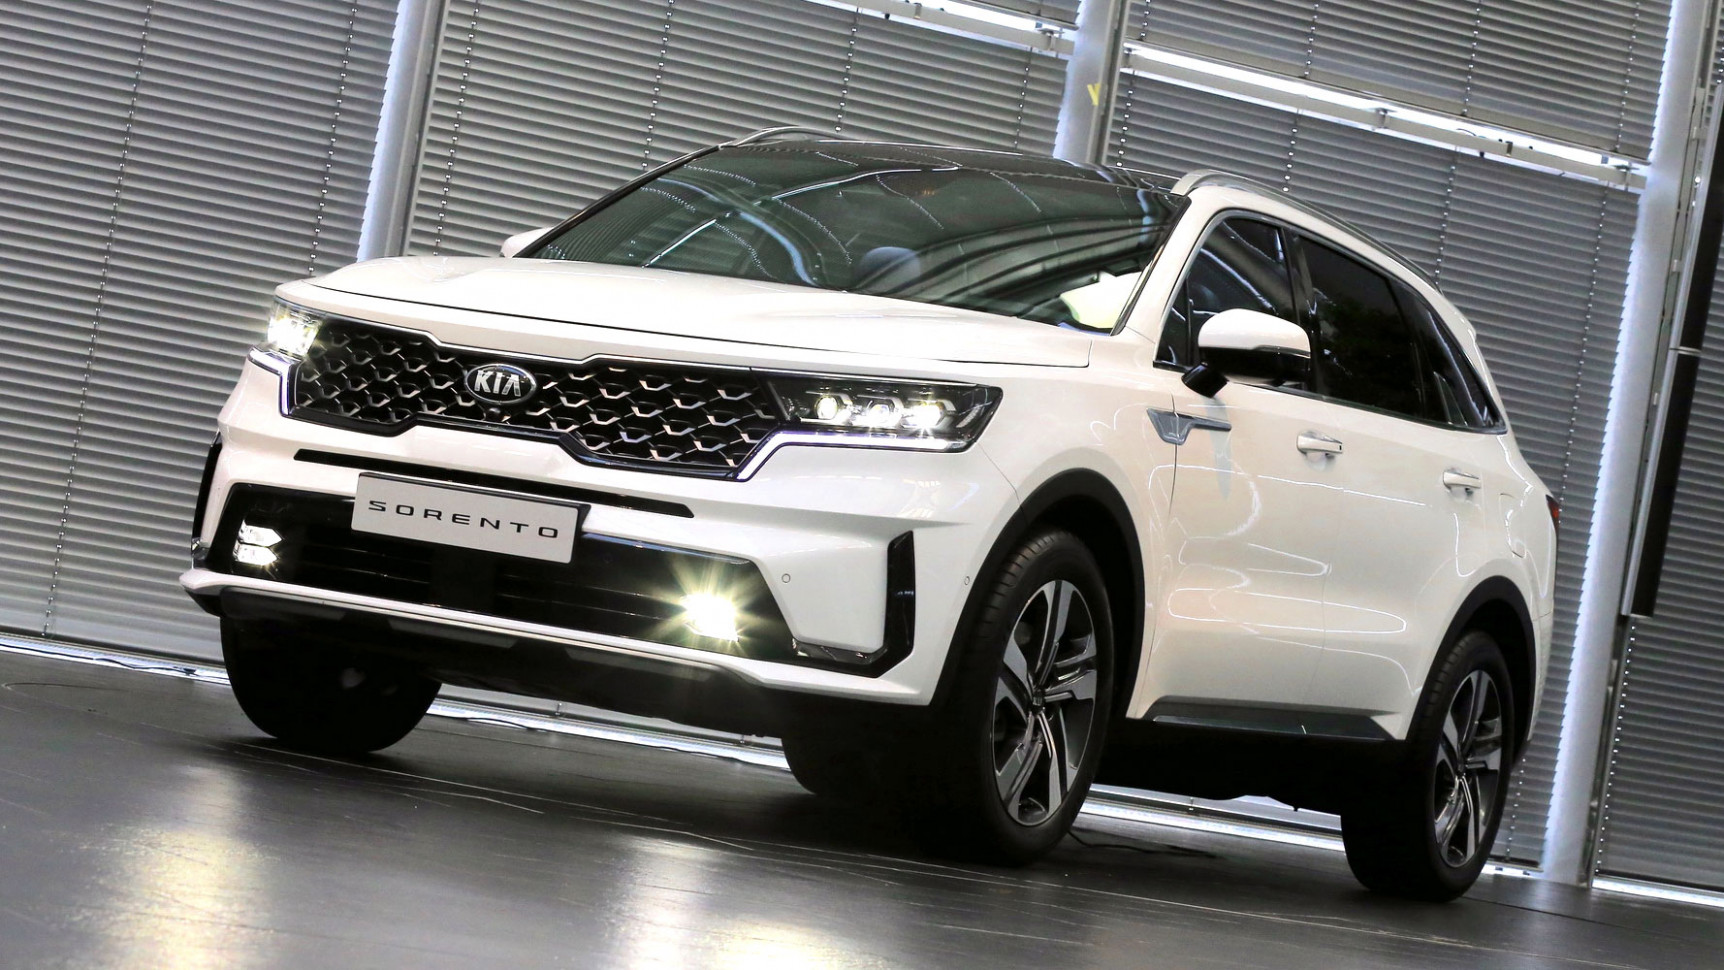 Release Date and Concept When Does 2022 Kia Sorento Come Out